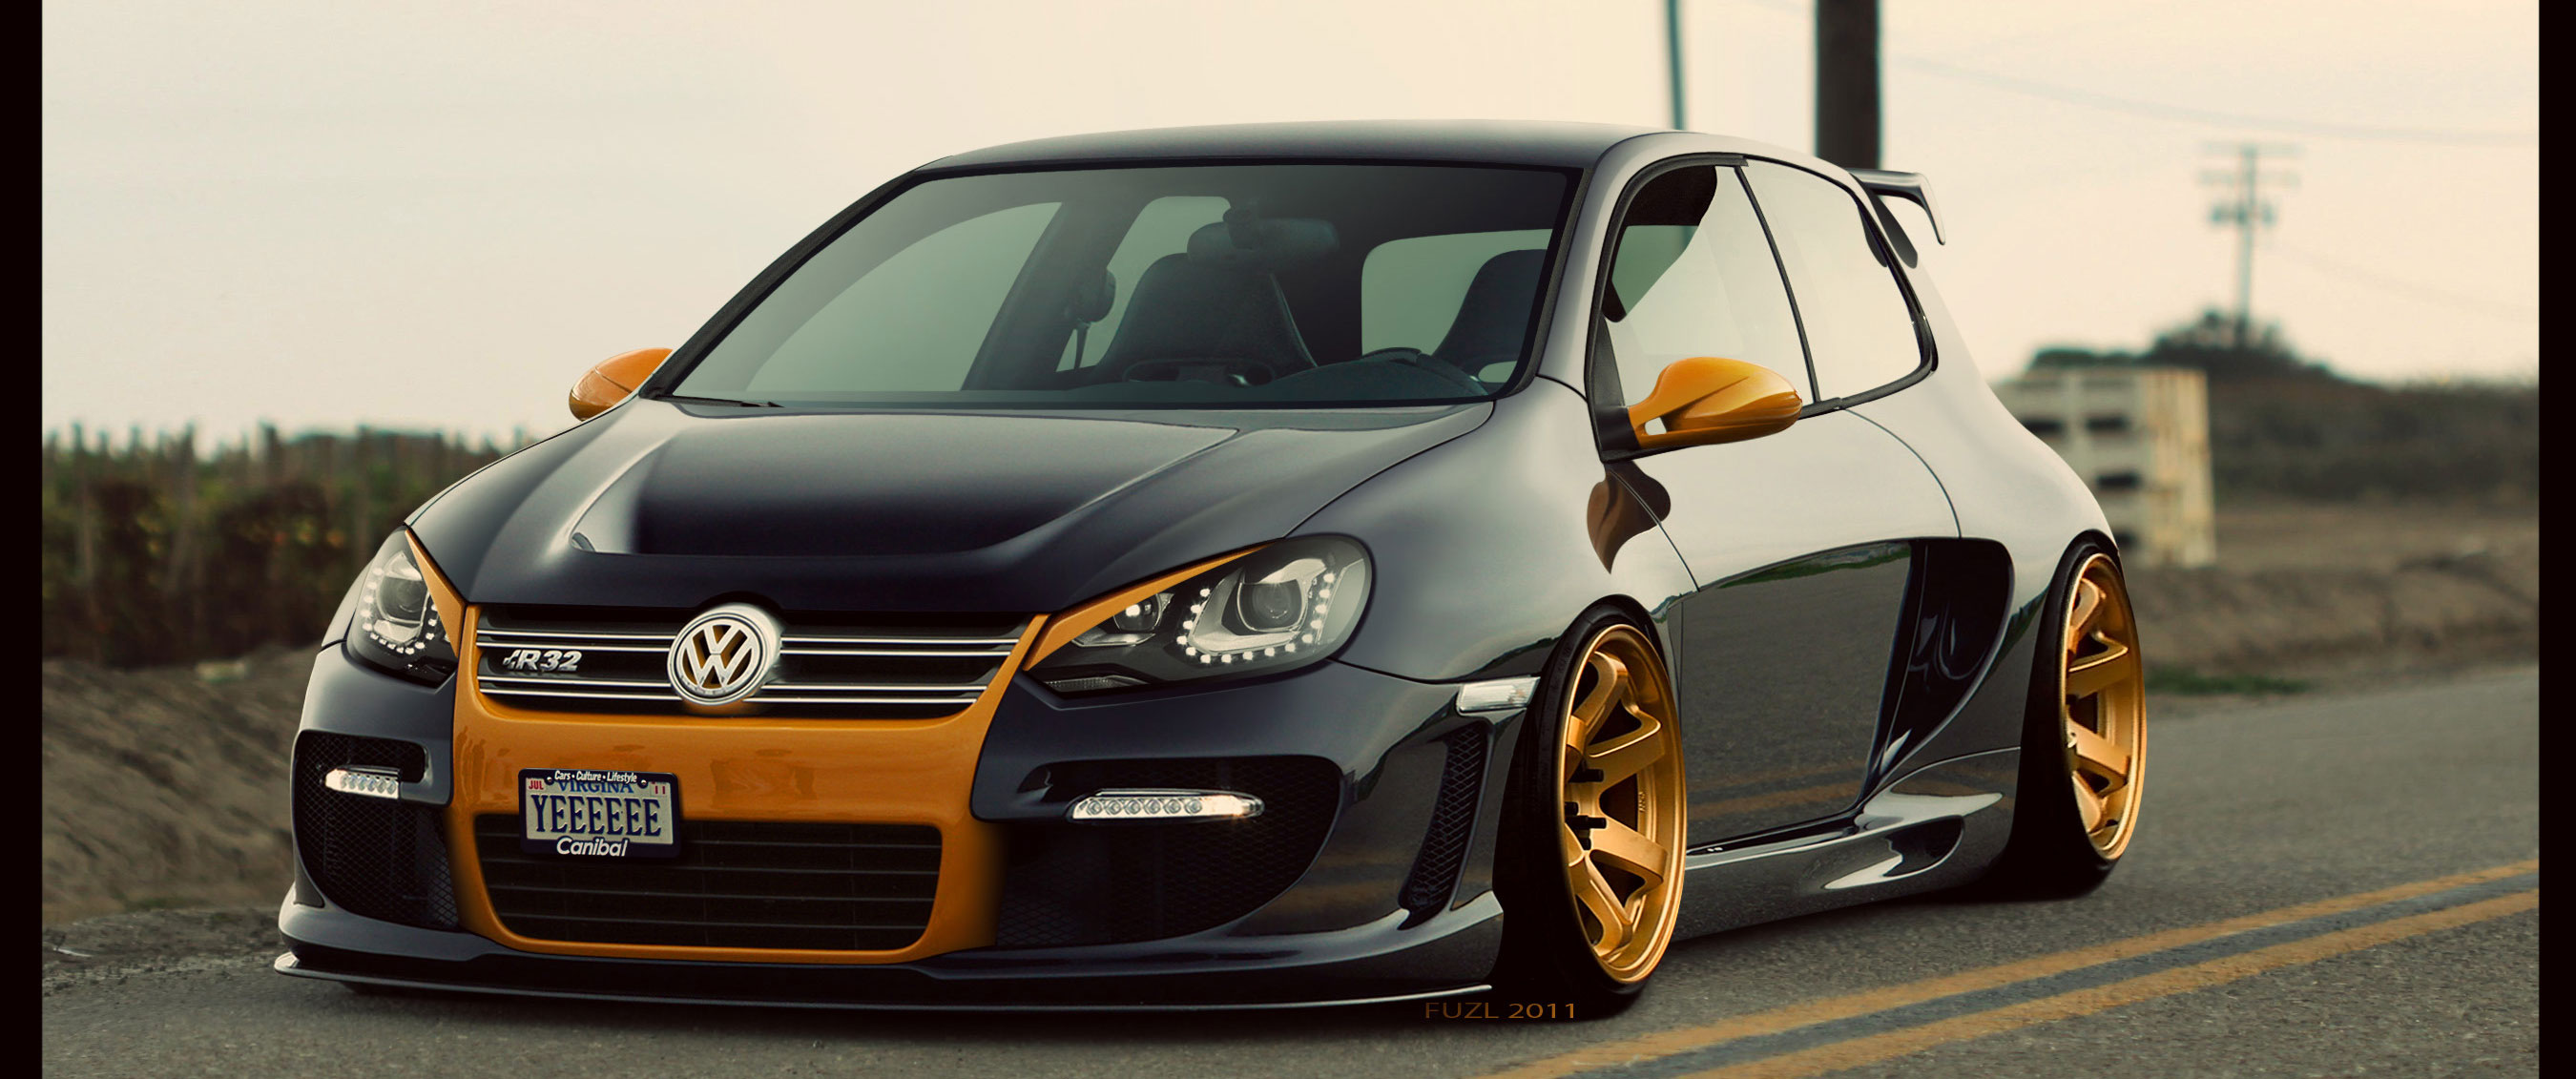 Vwvortex Com Wide Body Kit